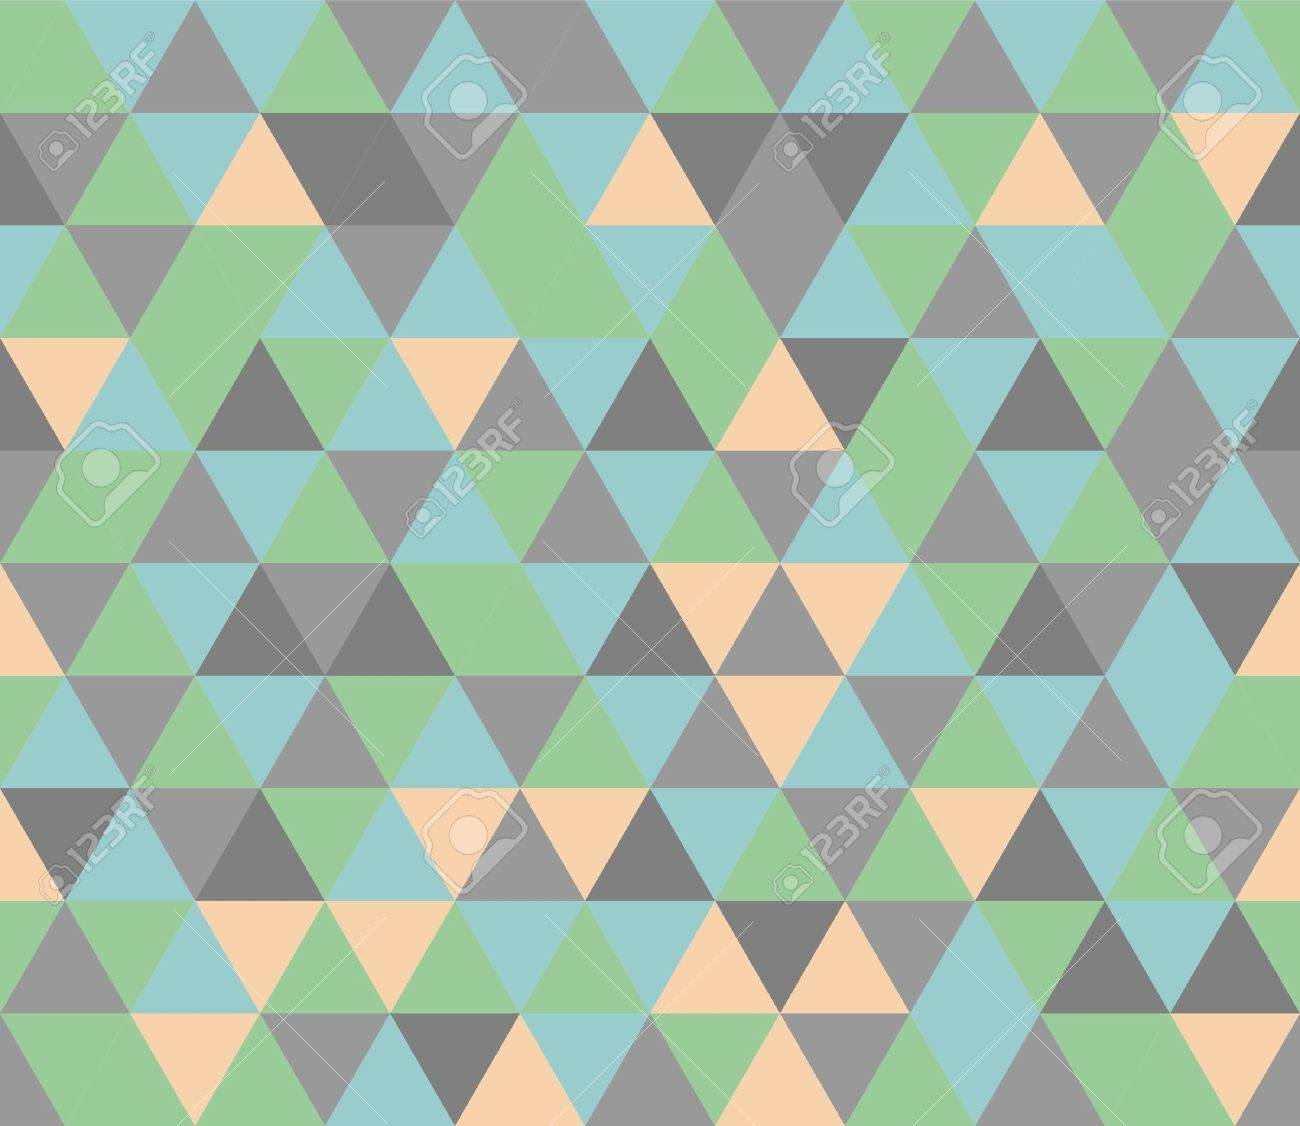 Colorful Tile Vector Background Illustration With Gray, Orange ...